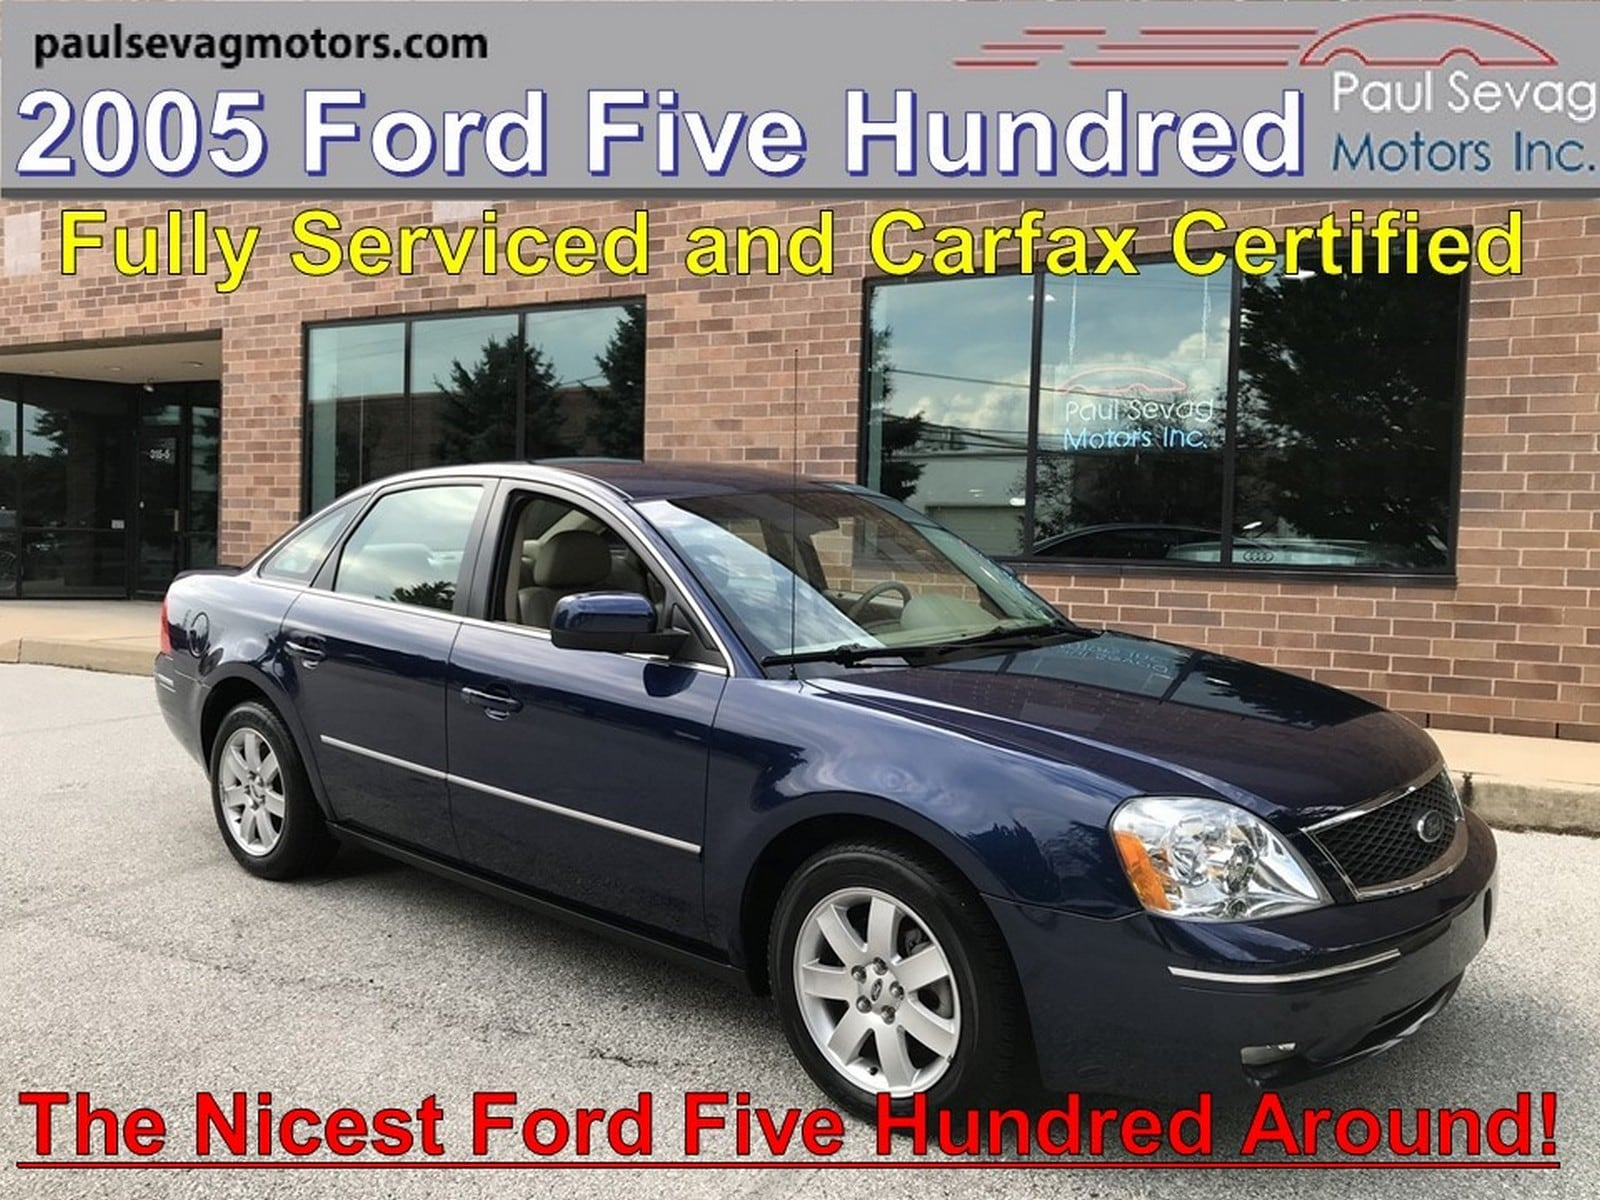 2005 Ford Five Hundred SEL Leather Interior/Fully Serviced